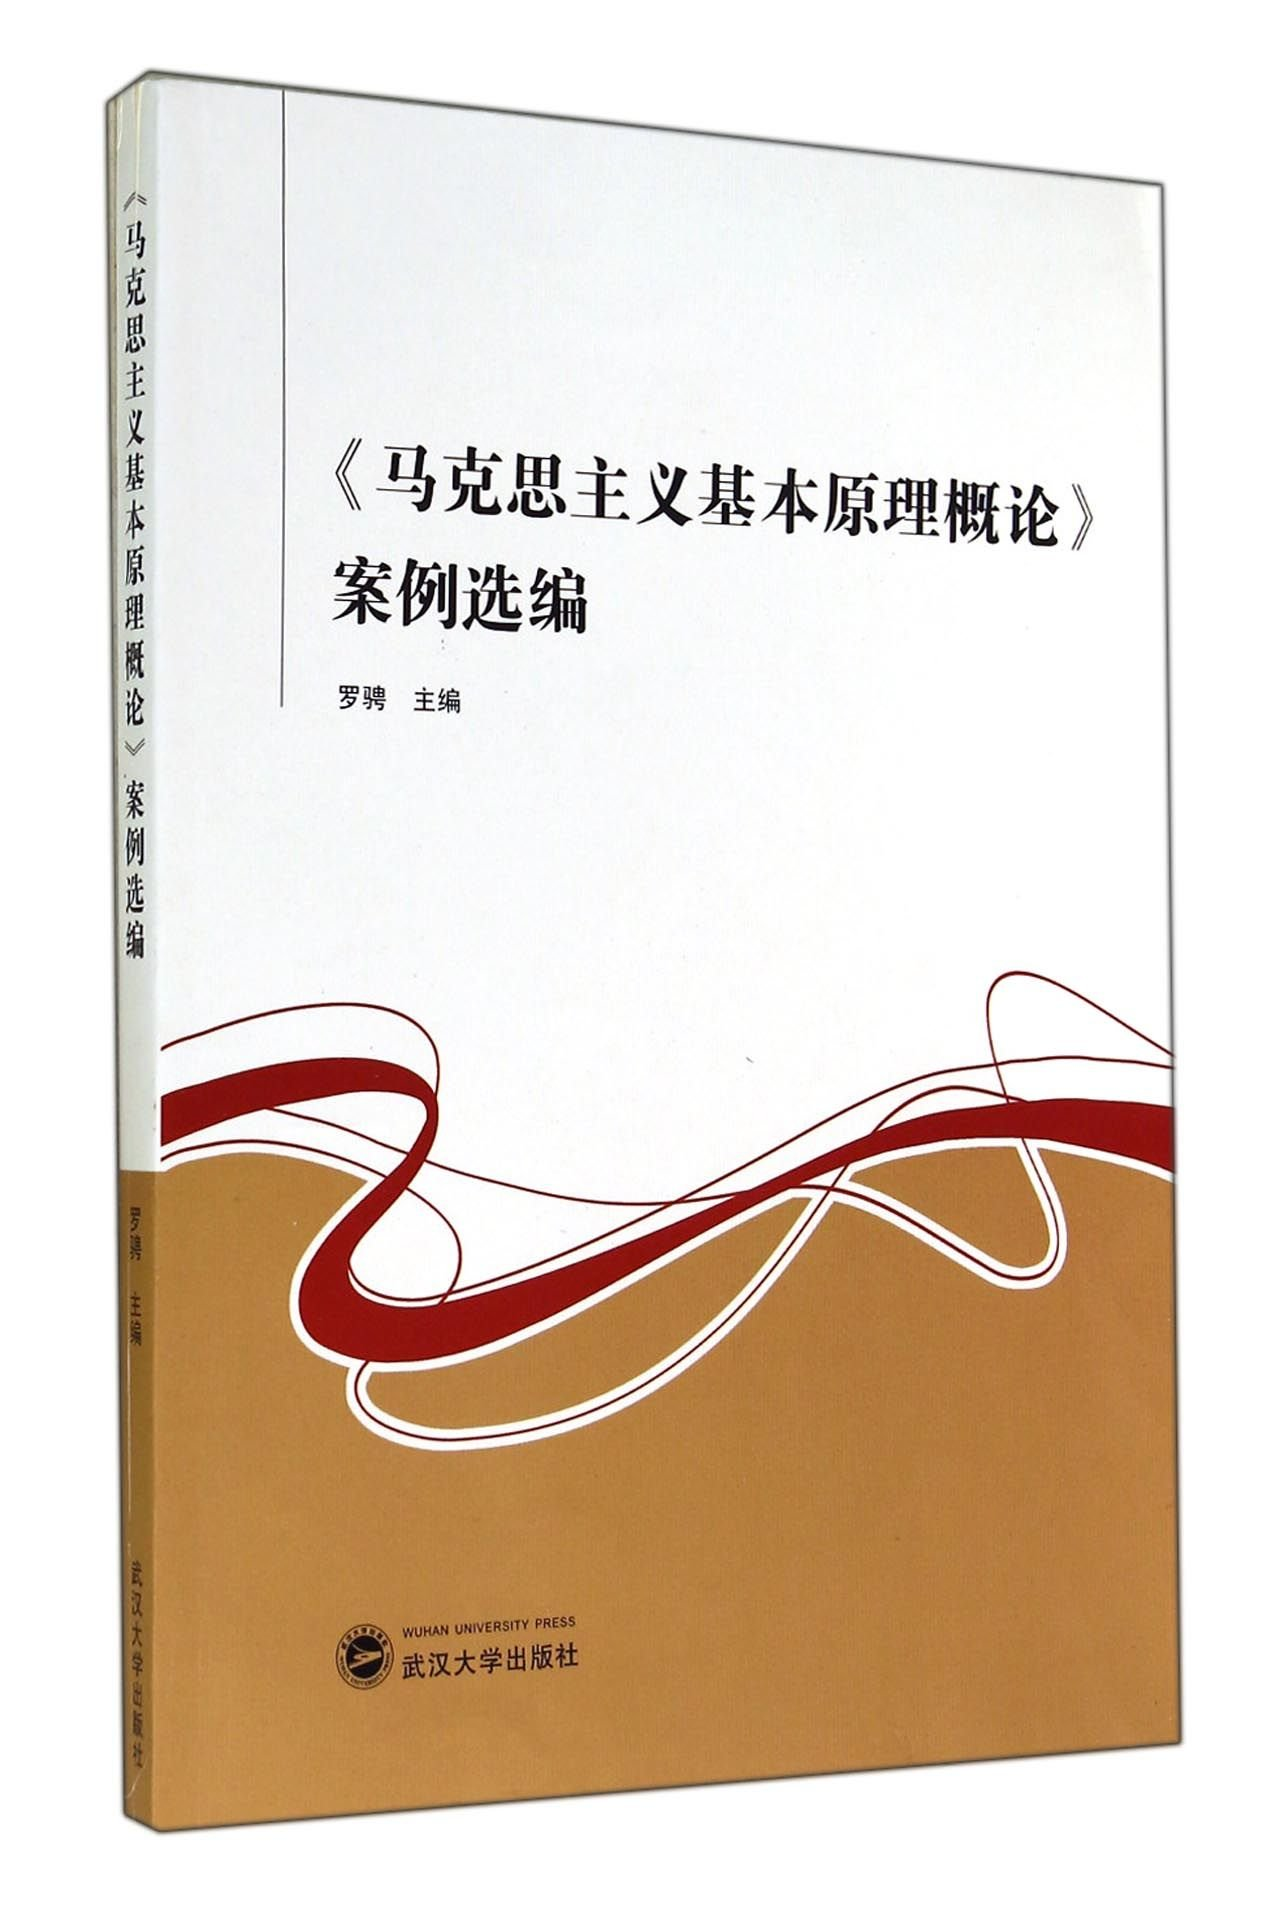 Read Online Introduction to the basic principles of Marxism Selected Cases(Chinese Edition) pdf